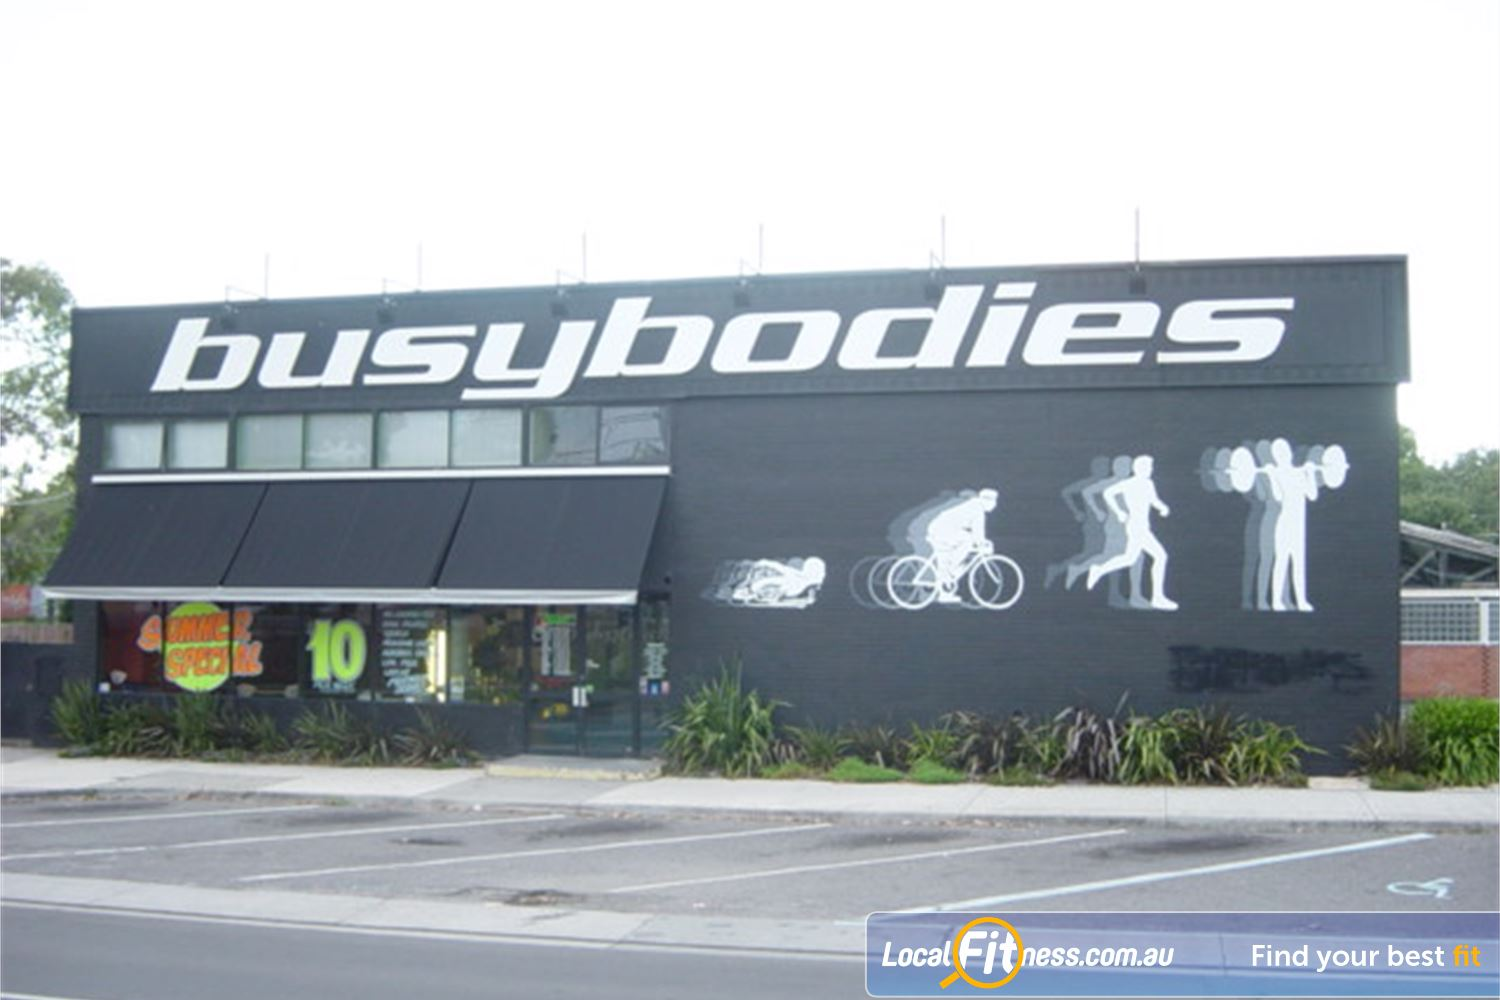 Busybodies Health & Fitness Centre front photo